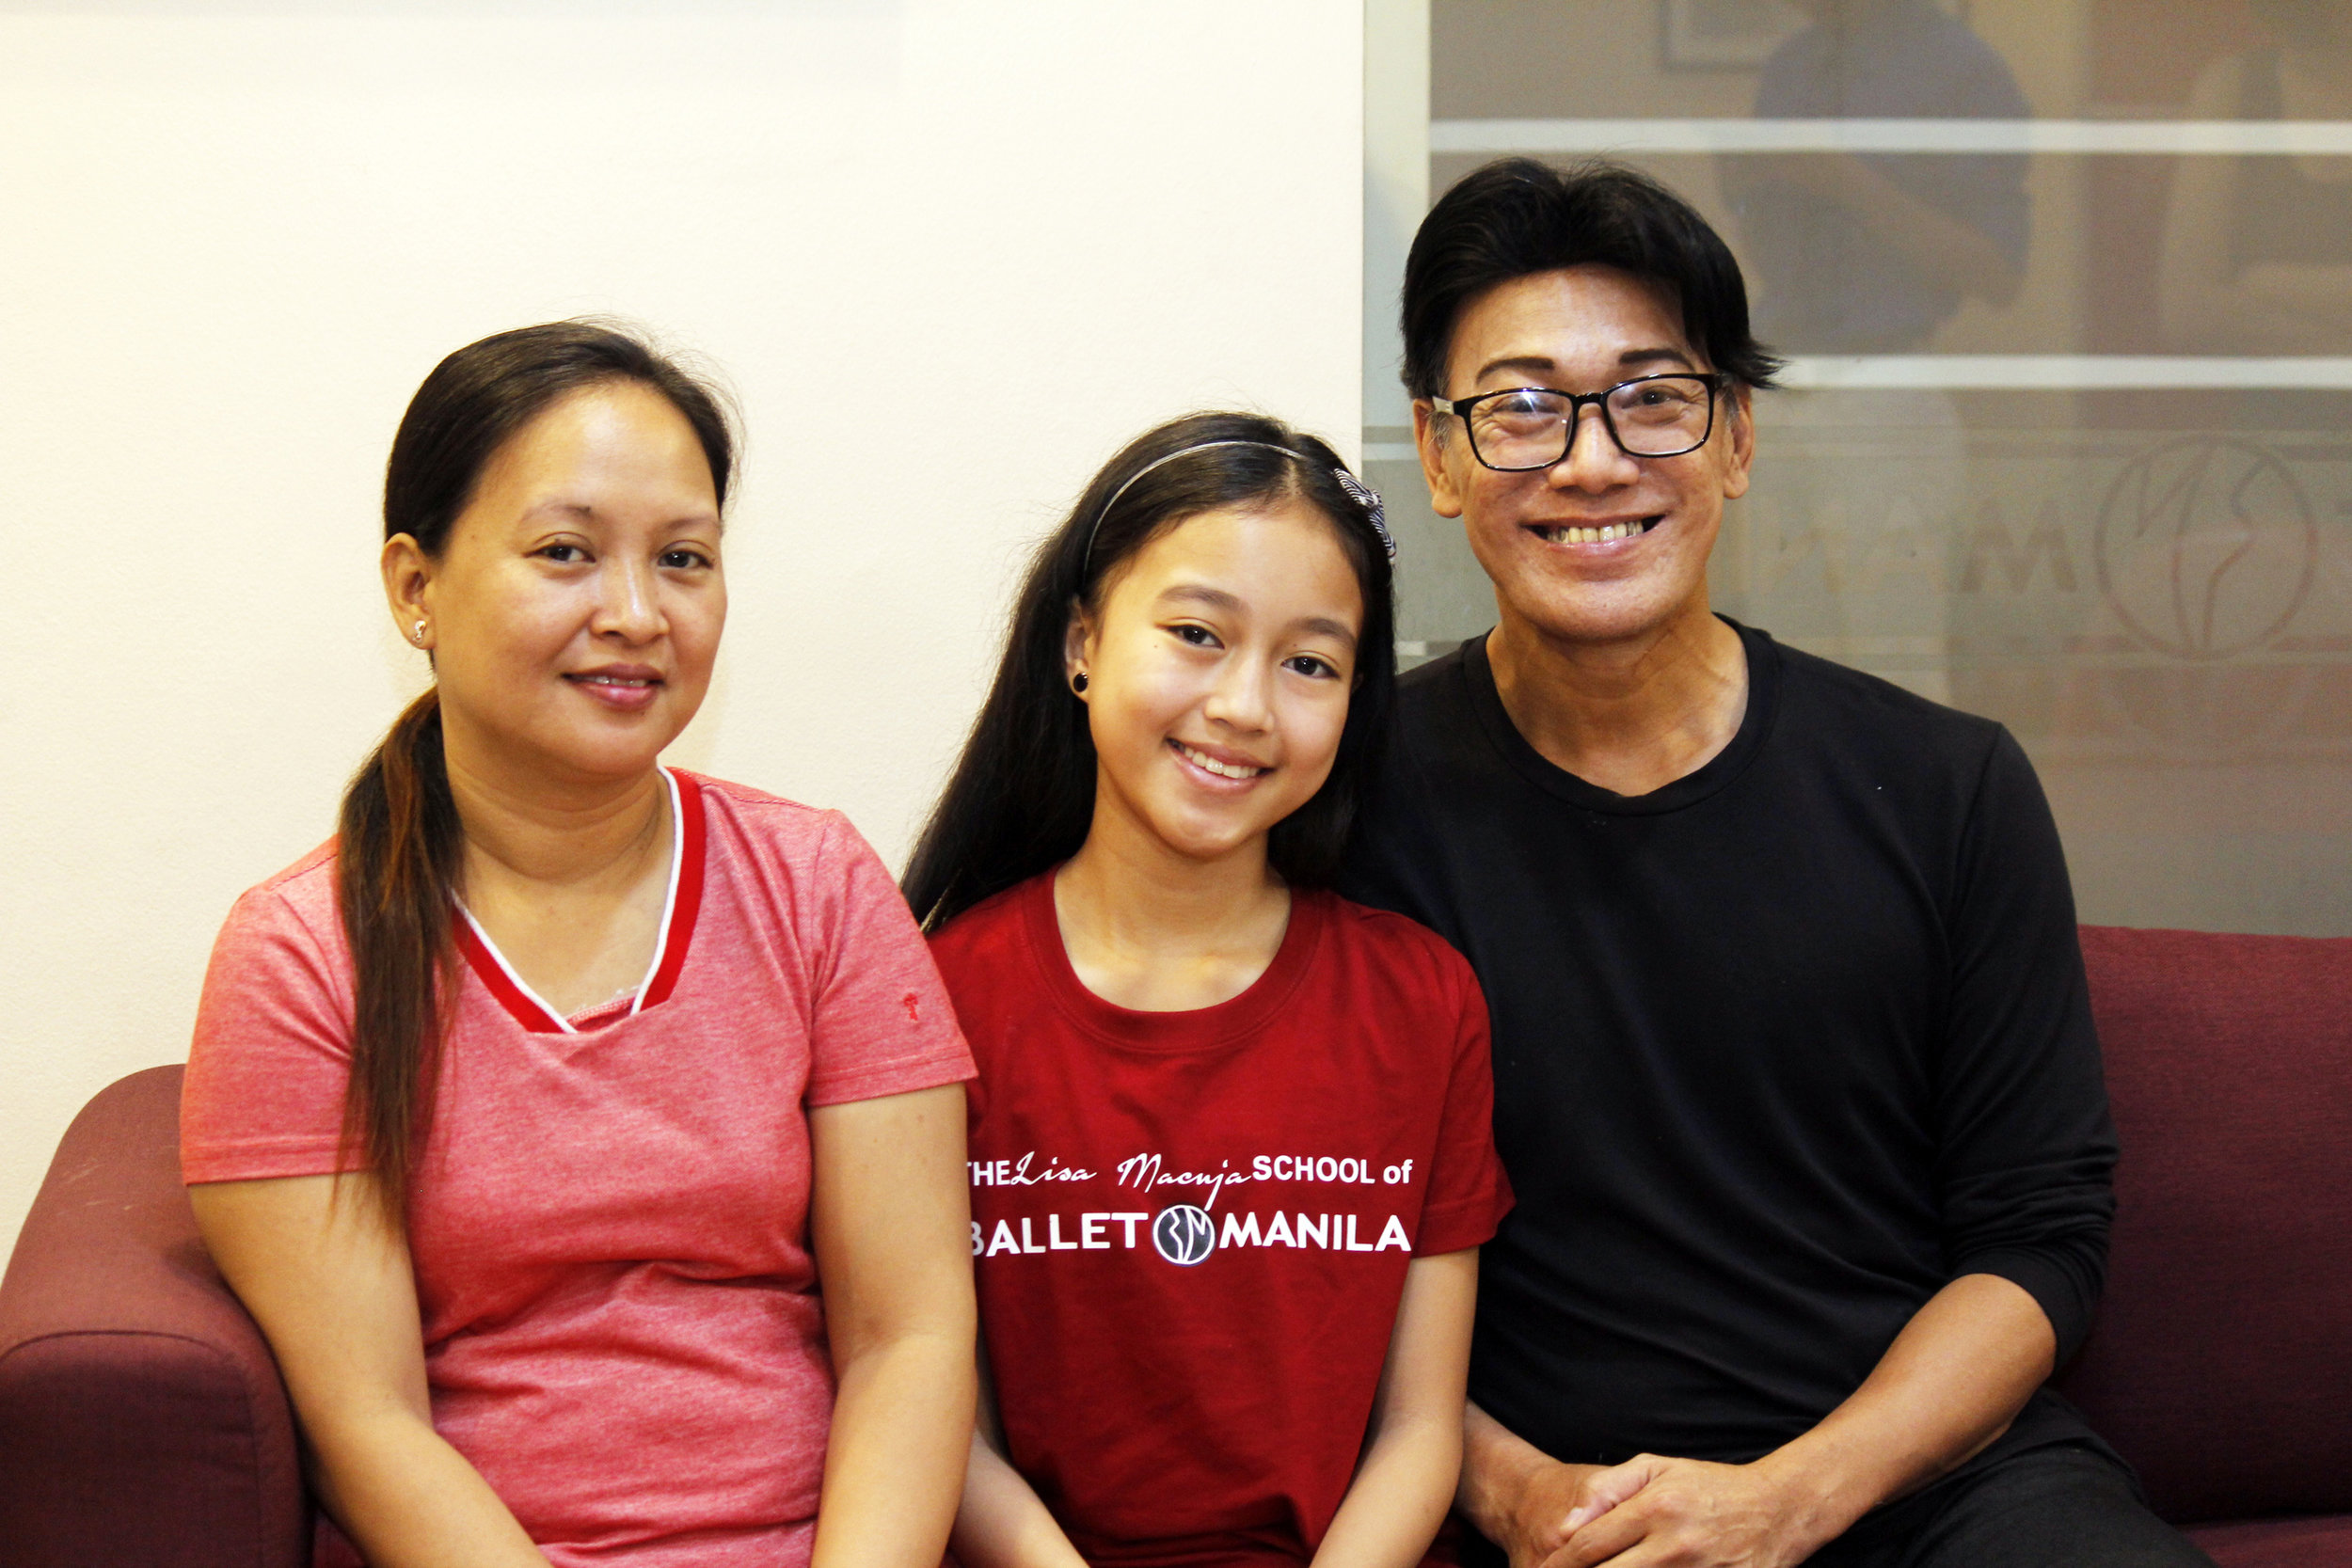 Melissa Francisco says her daughter Gian surprised the entire family one day, saying she had passed a Ballet Manila audition. With them is BM co-artistic director  Osias Barroso  who is also one of Gian's teachers. Photo by Jimmy Villanueva